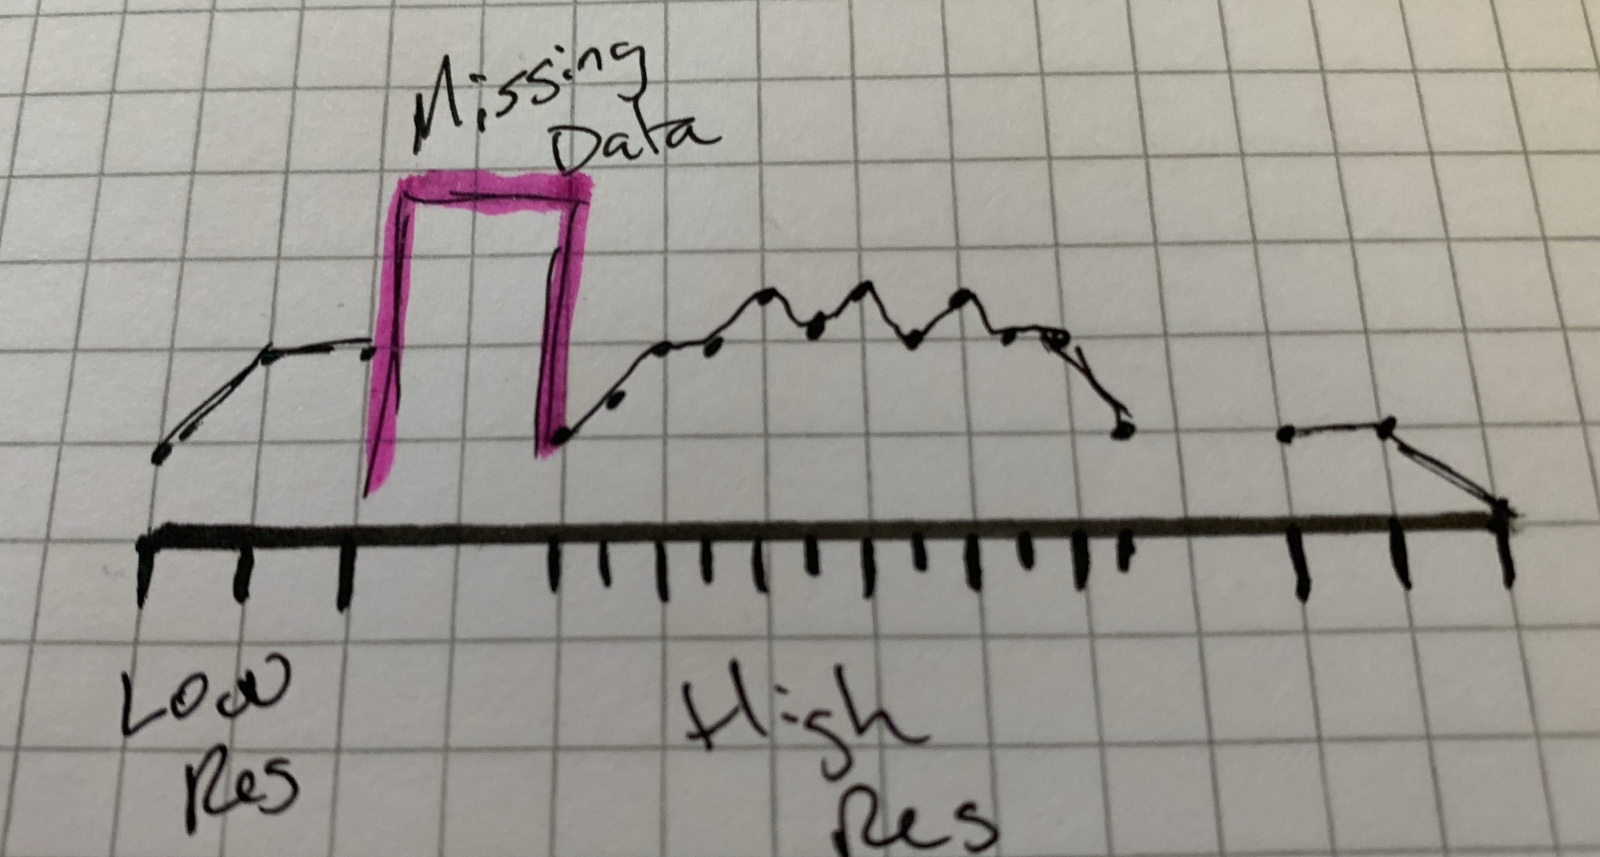 How to visualize changing intervals and missing data